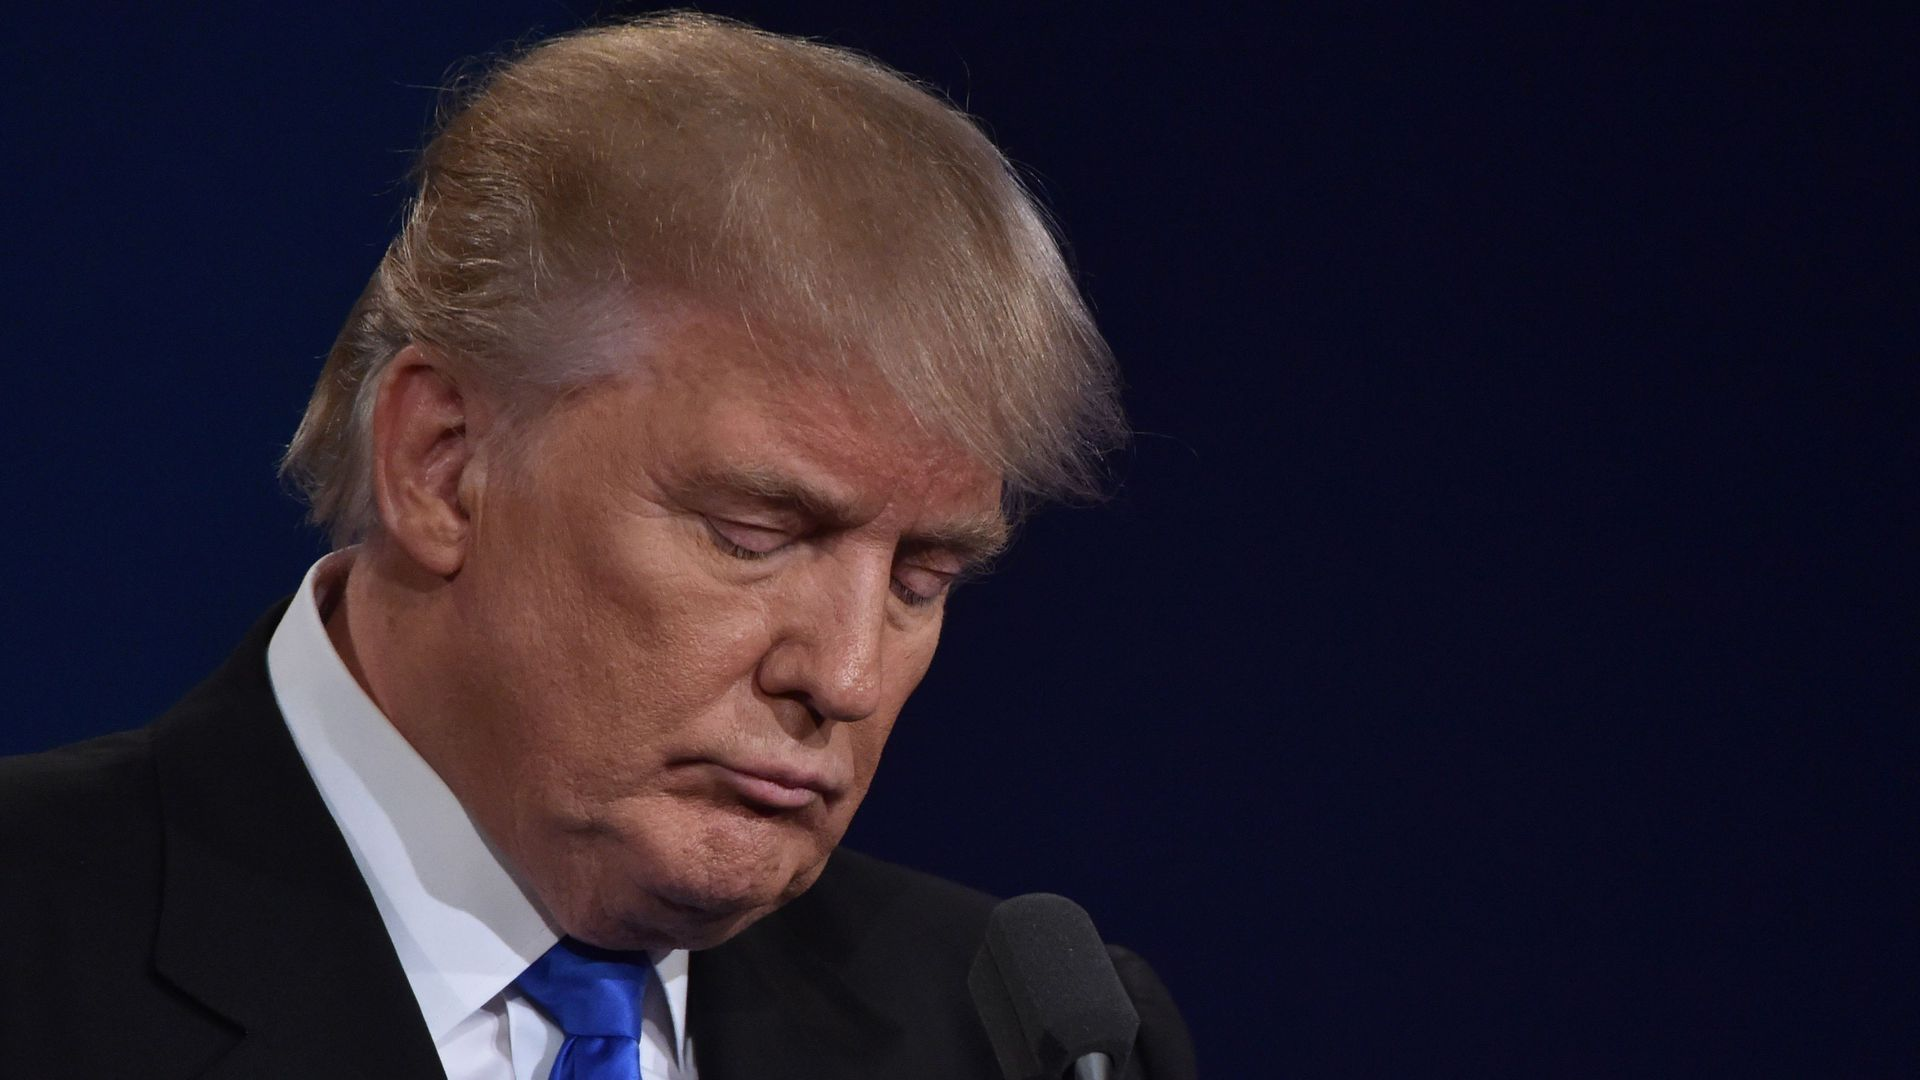 Donald Trump looking sad with his face down